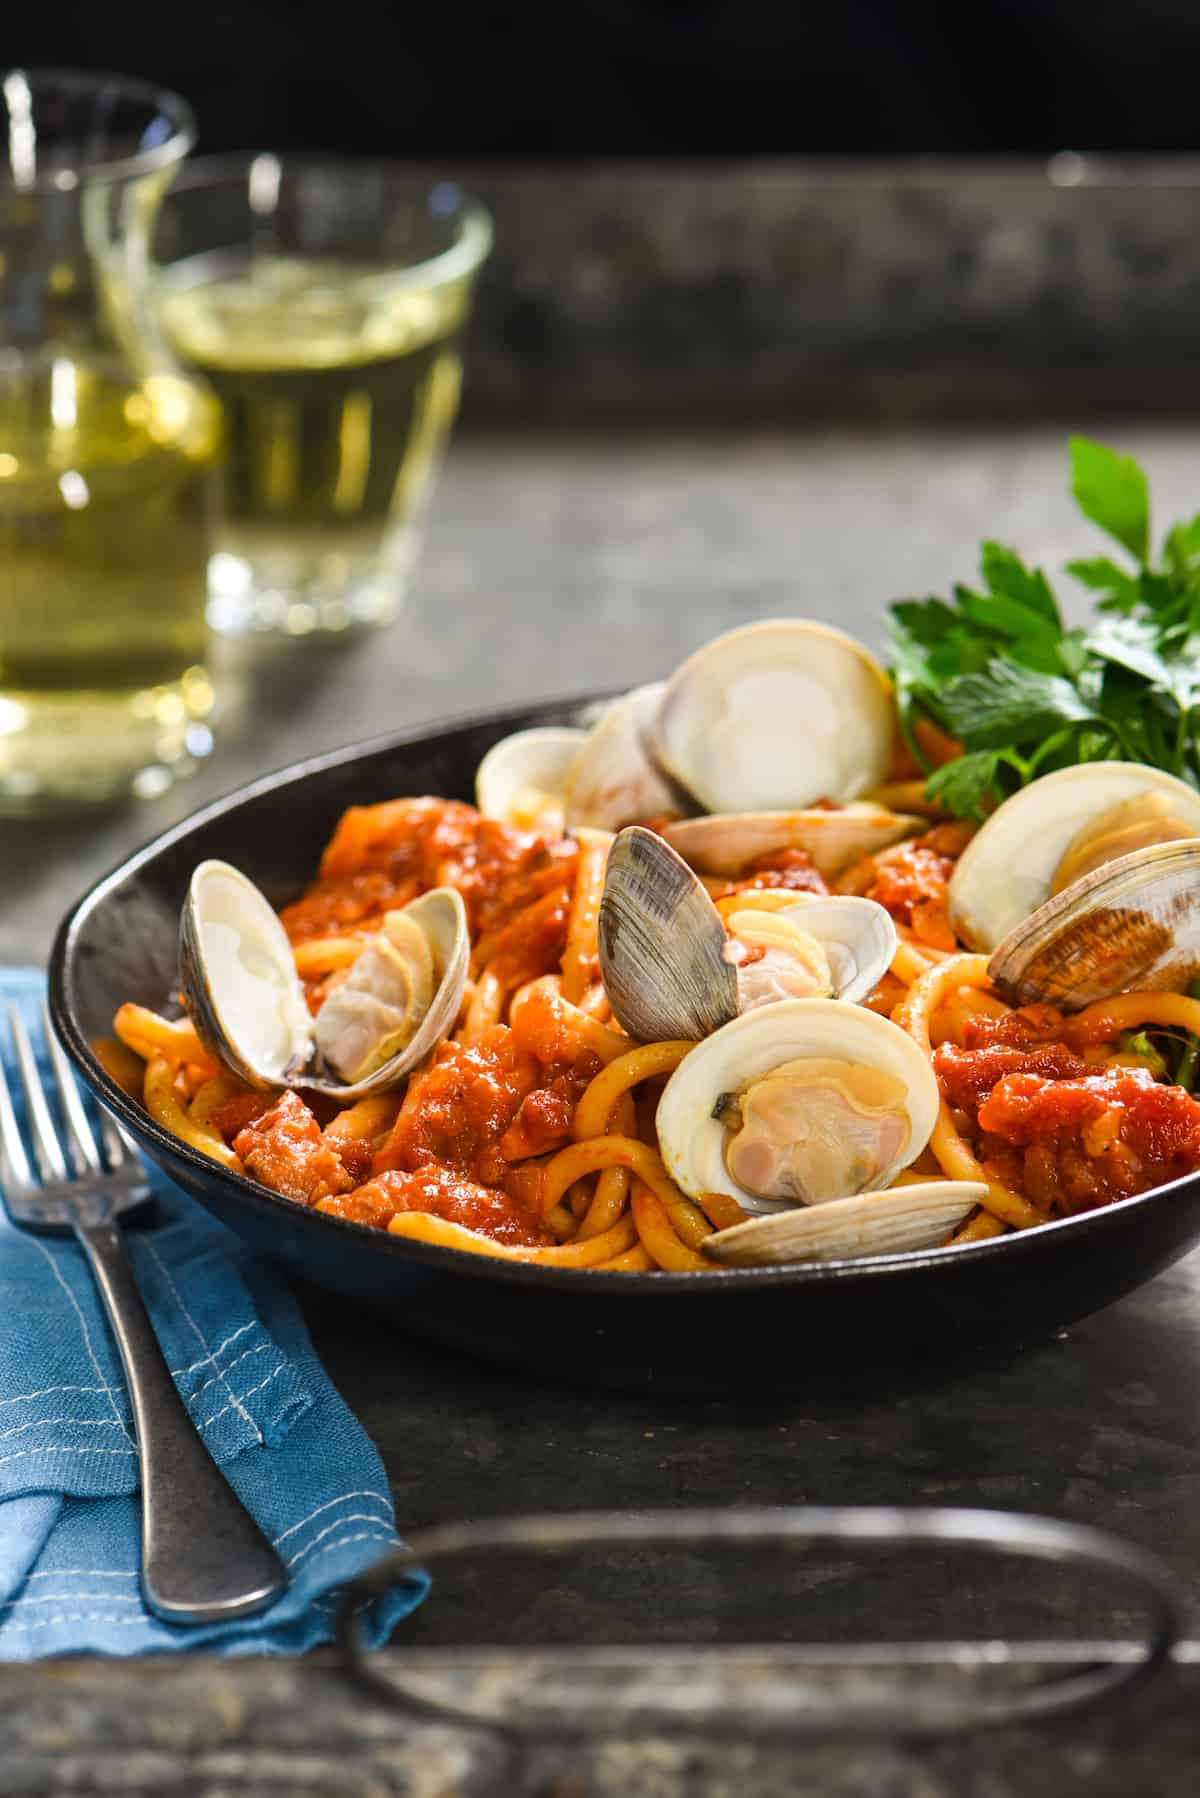 Pasta all'Amatriciana with Clams - A rich, Roman-style pasta that you can easily make at home! | foxeslovelemons.com